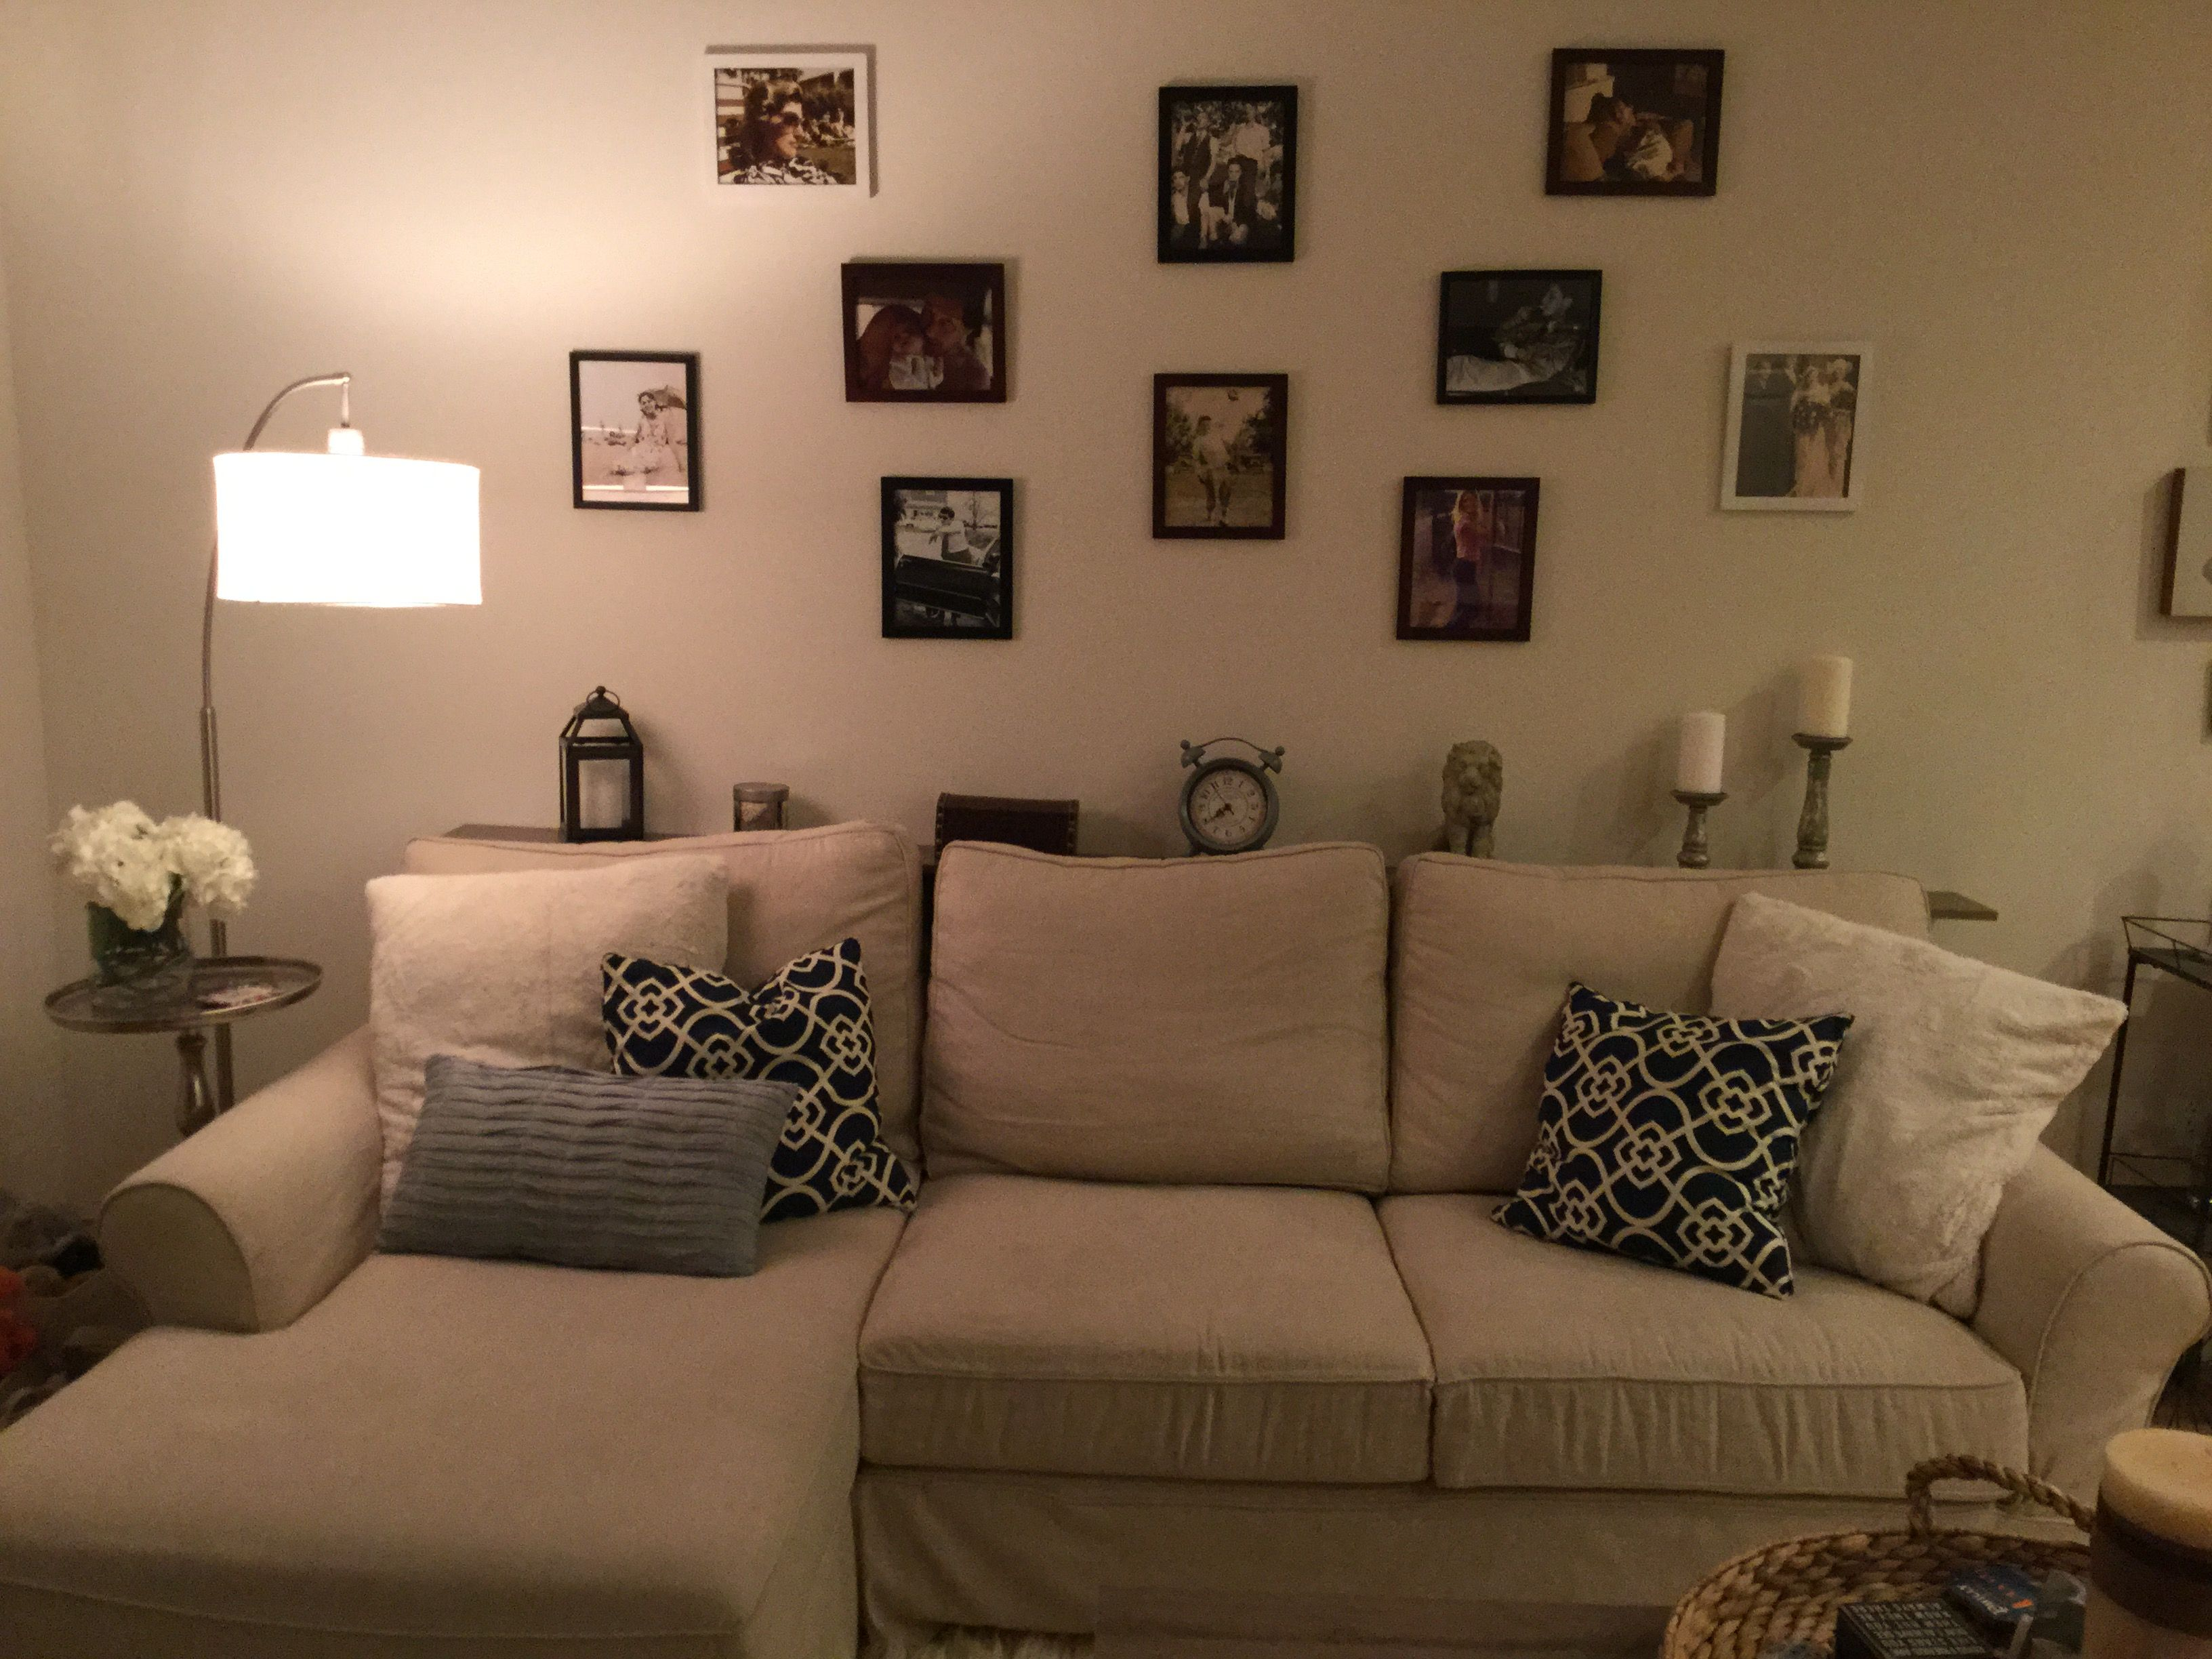 living room decor picture collage with images